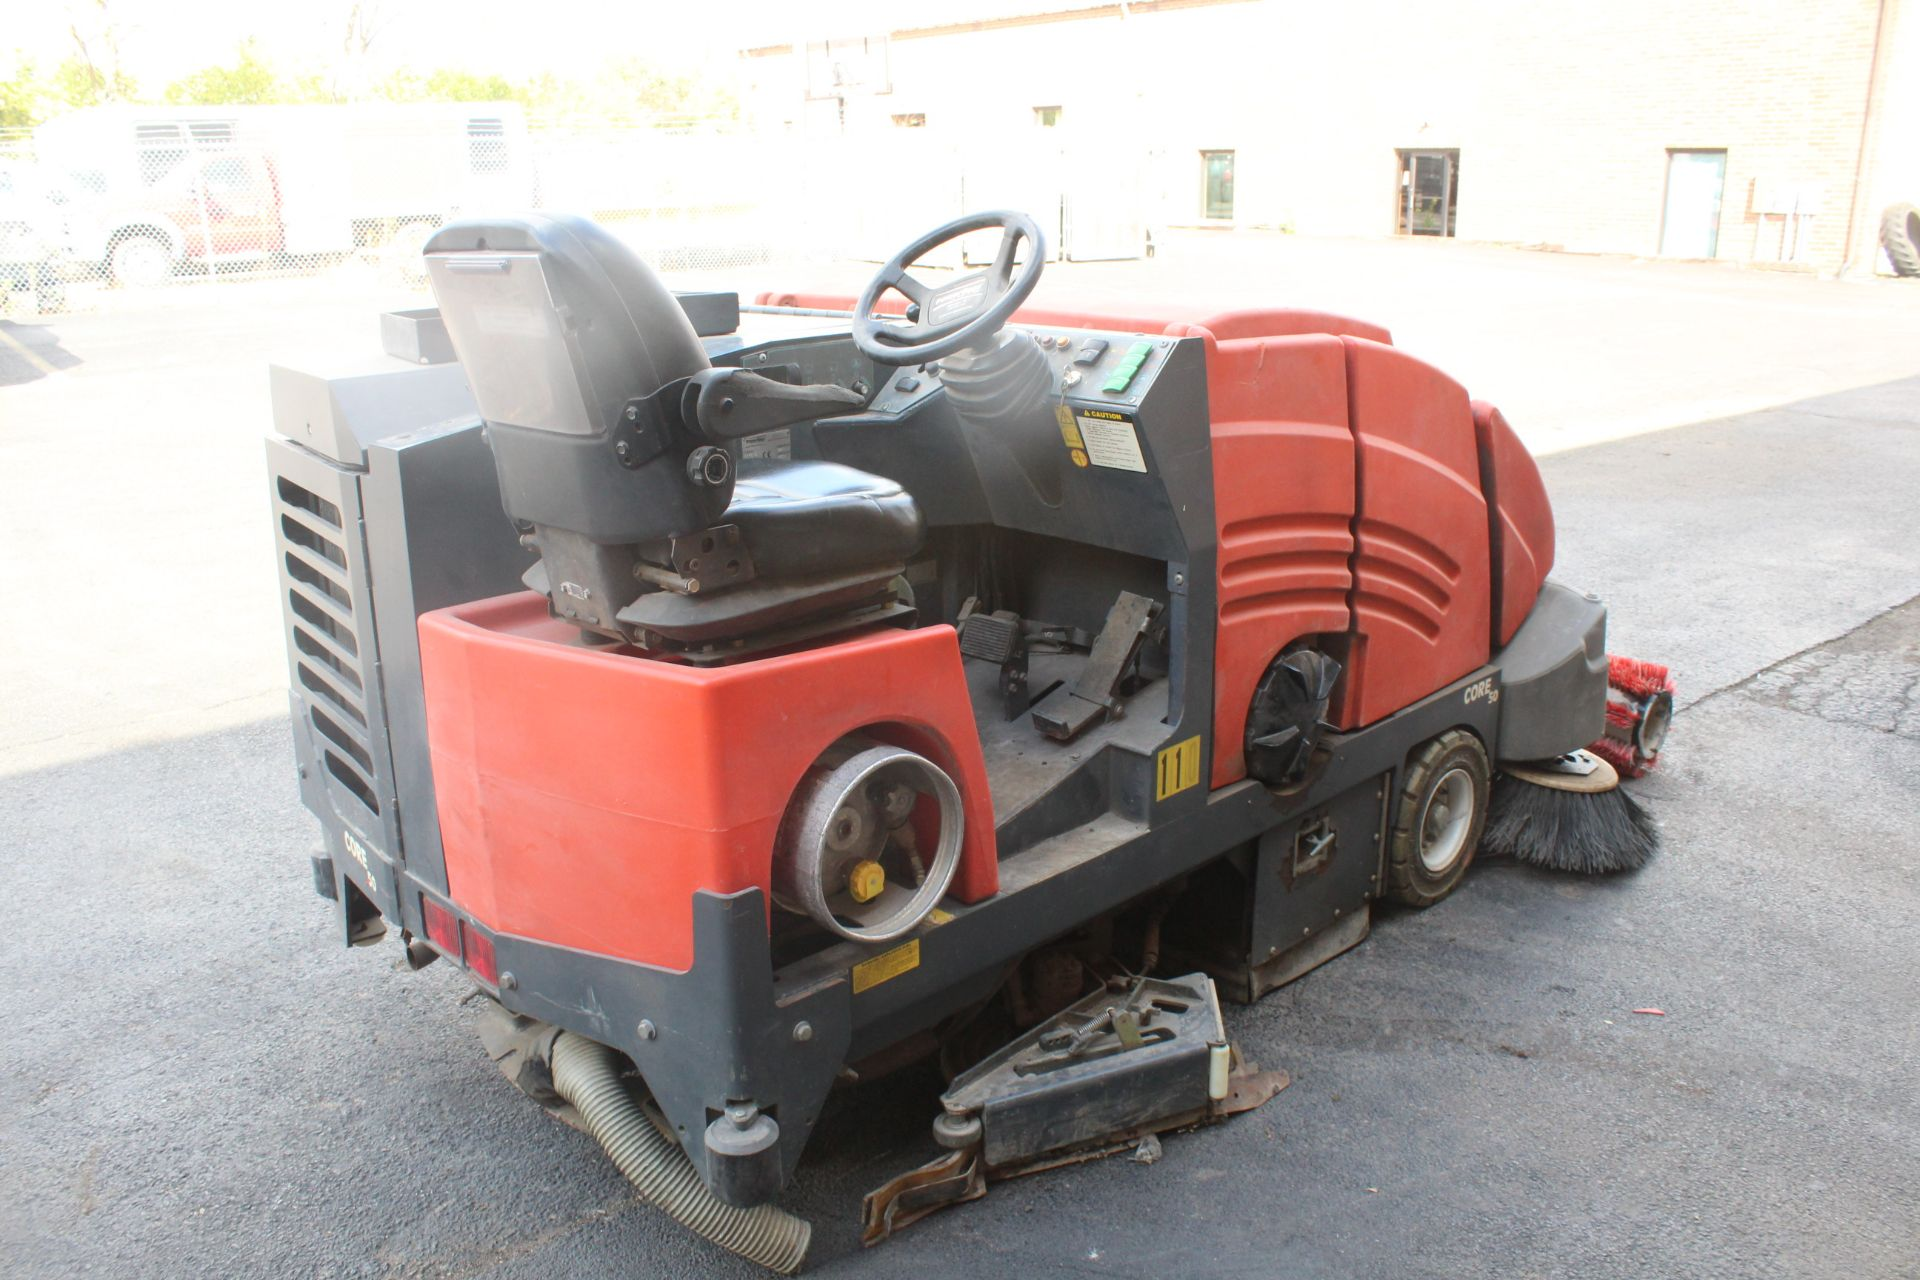 POWERBOSS CORE 50 RIDE ON SWEEPER SCRUBBER - Image 2 of 6